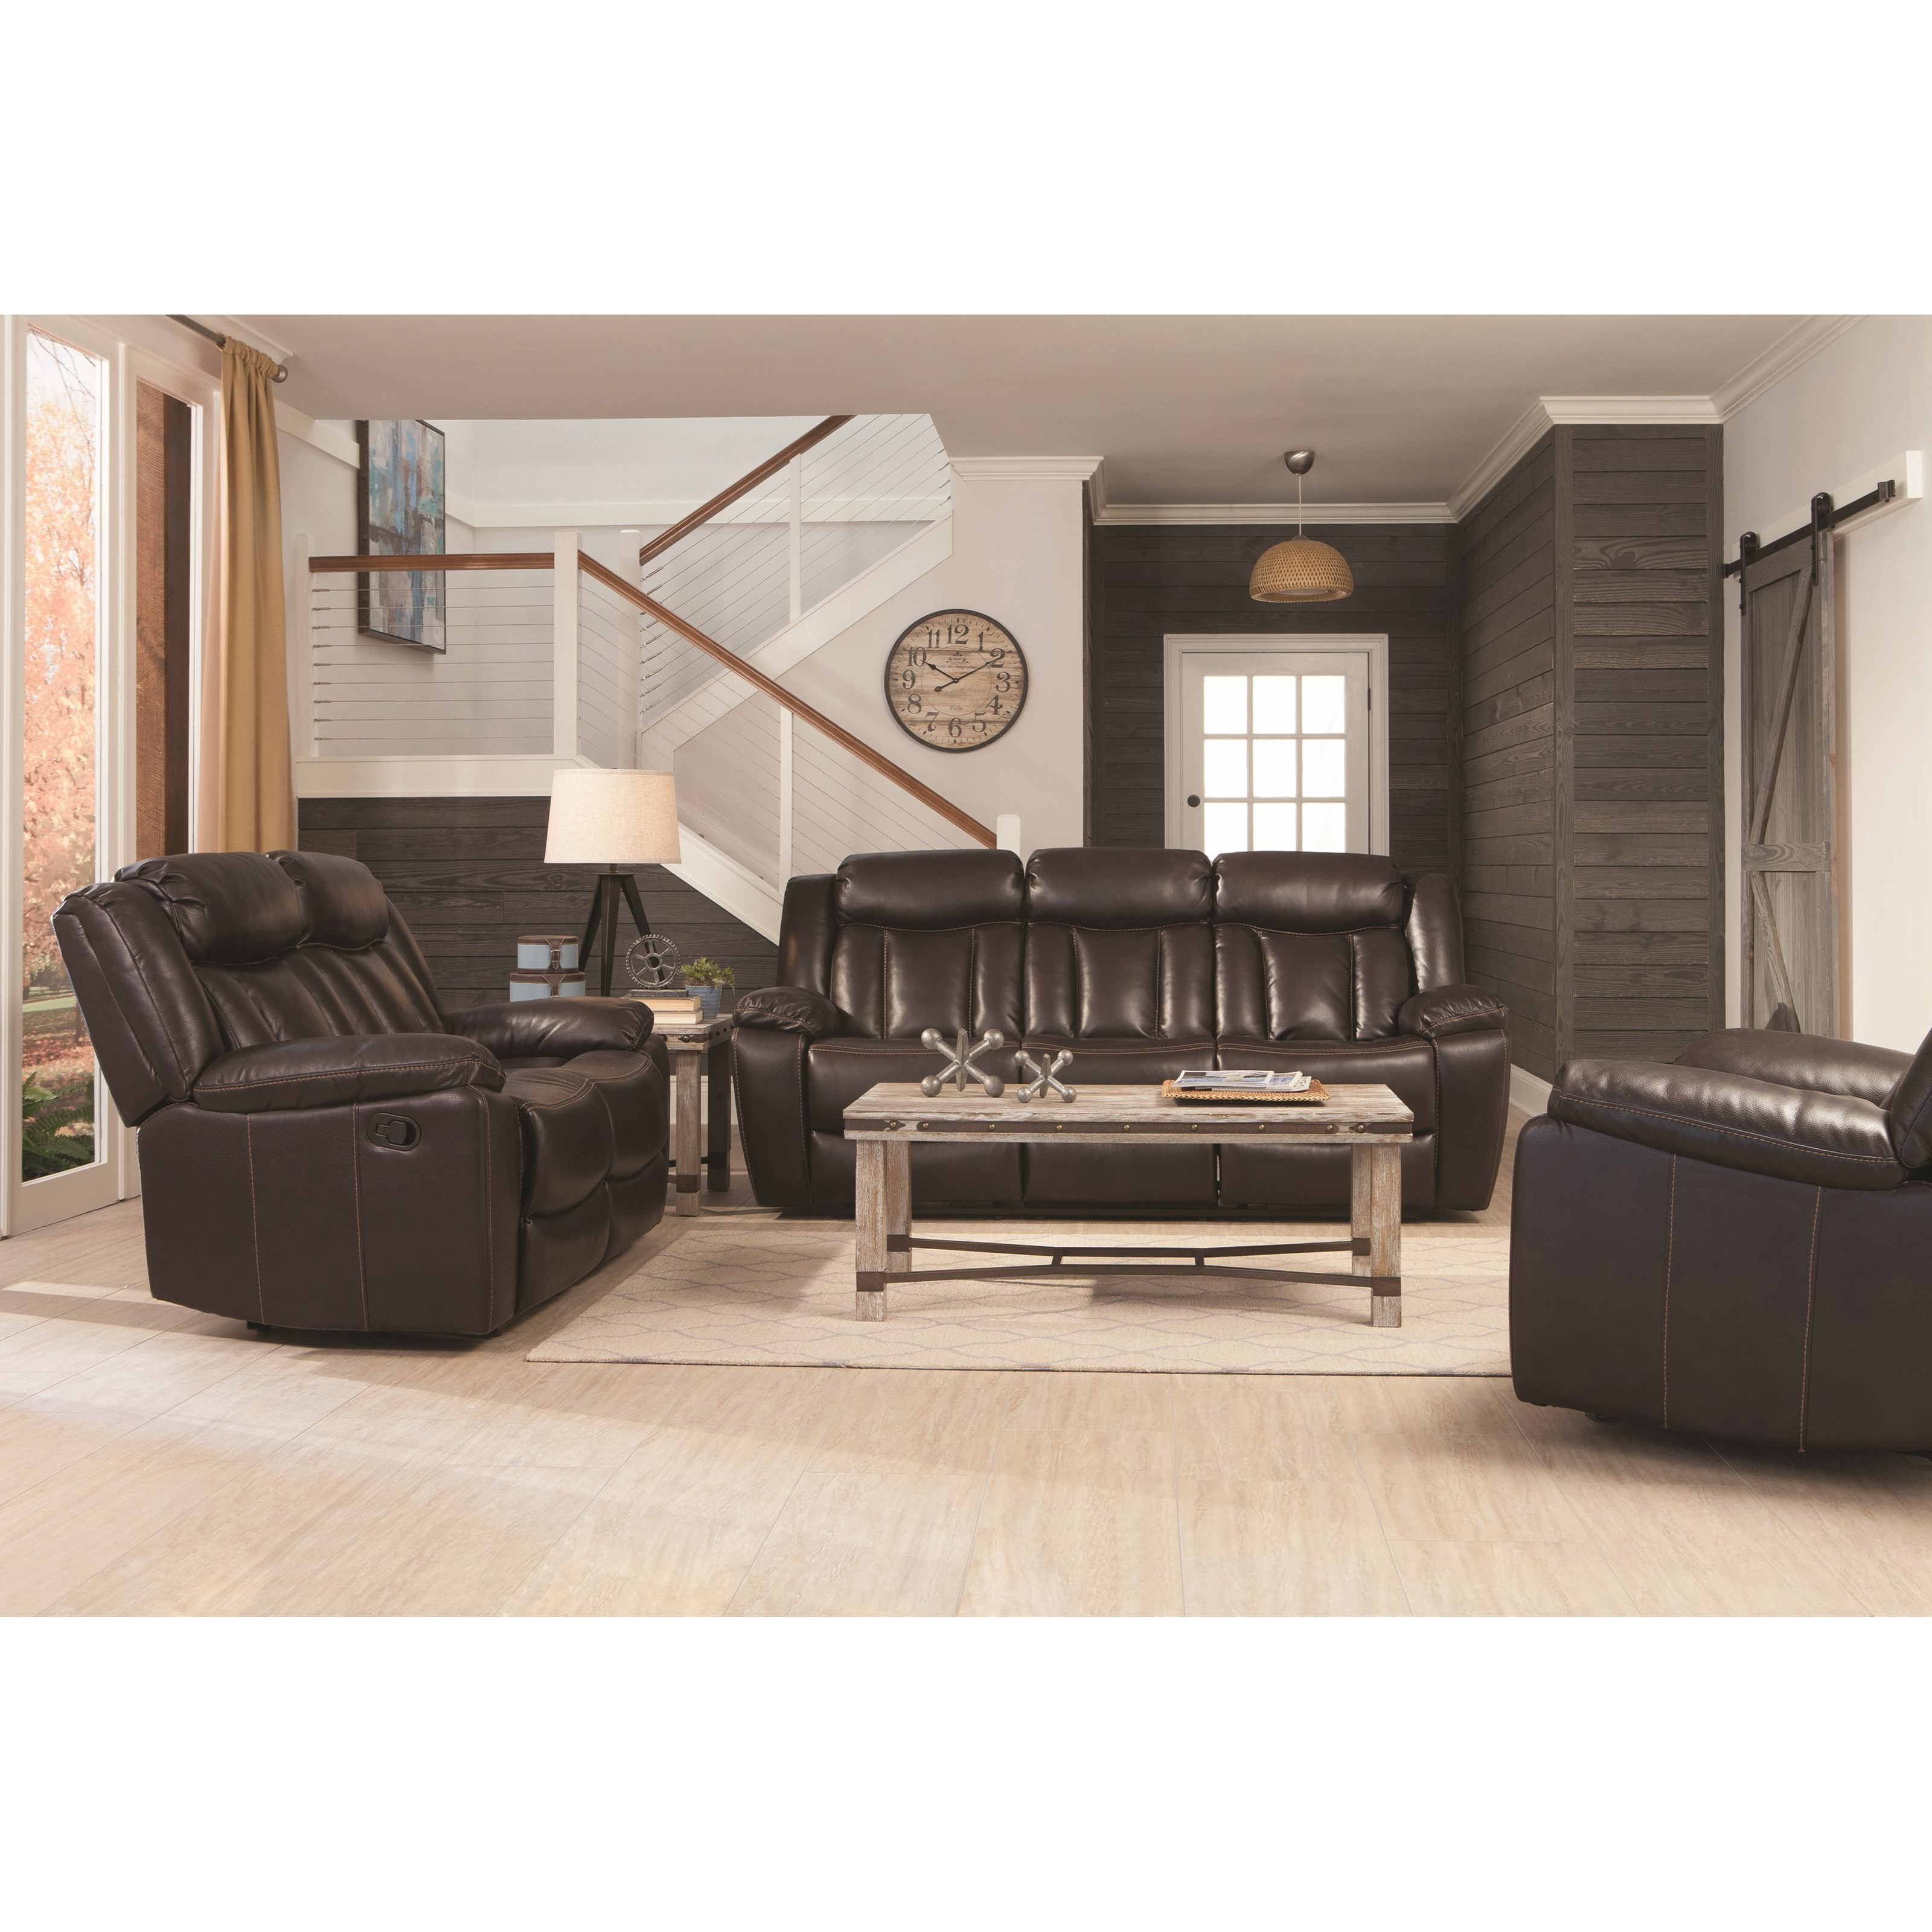 Coaster Bevington Reclining Living Room Group - Item Number: 602040 Living Room Group 1